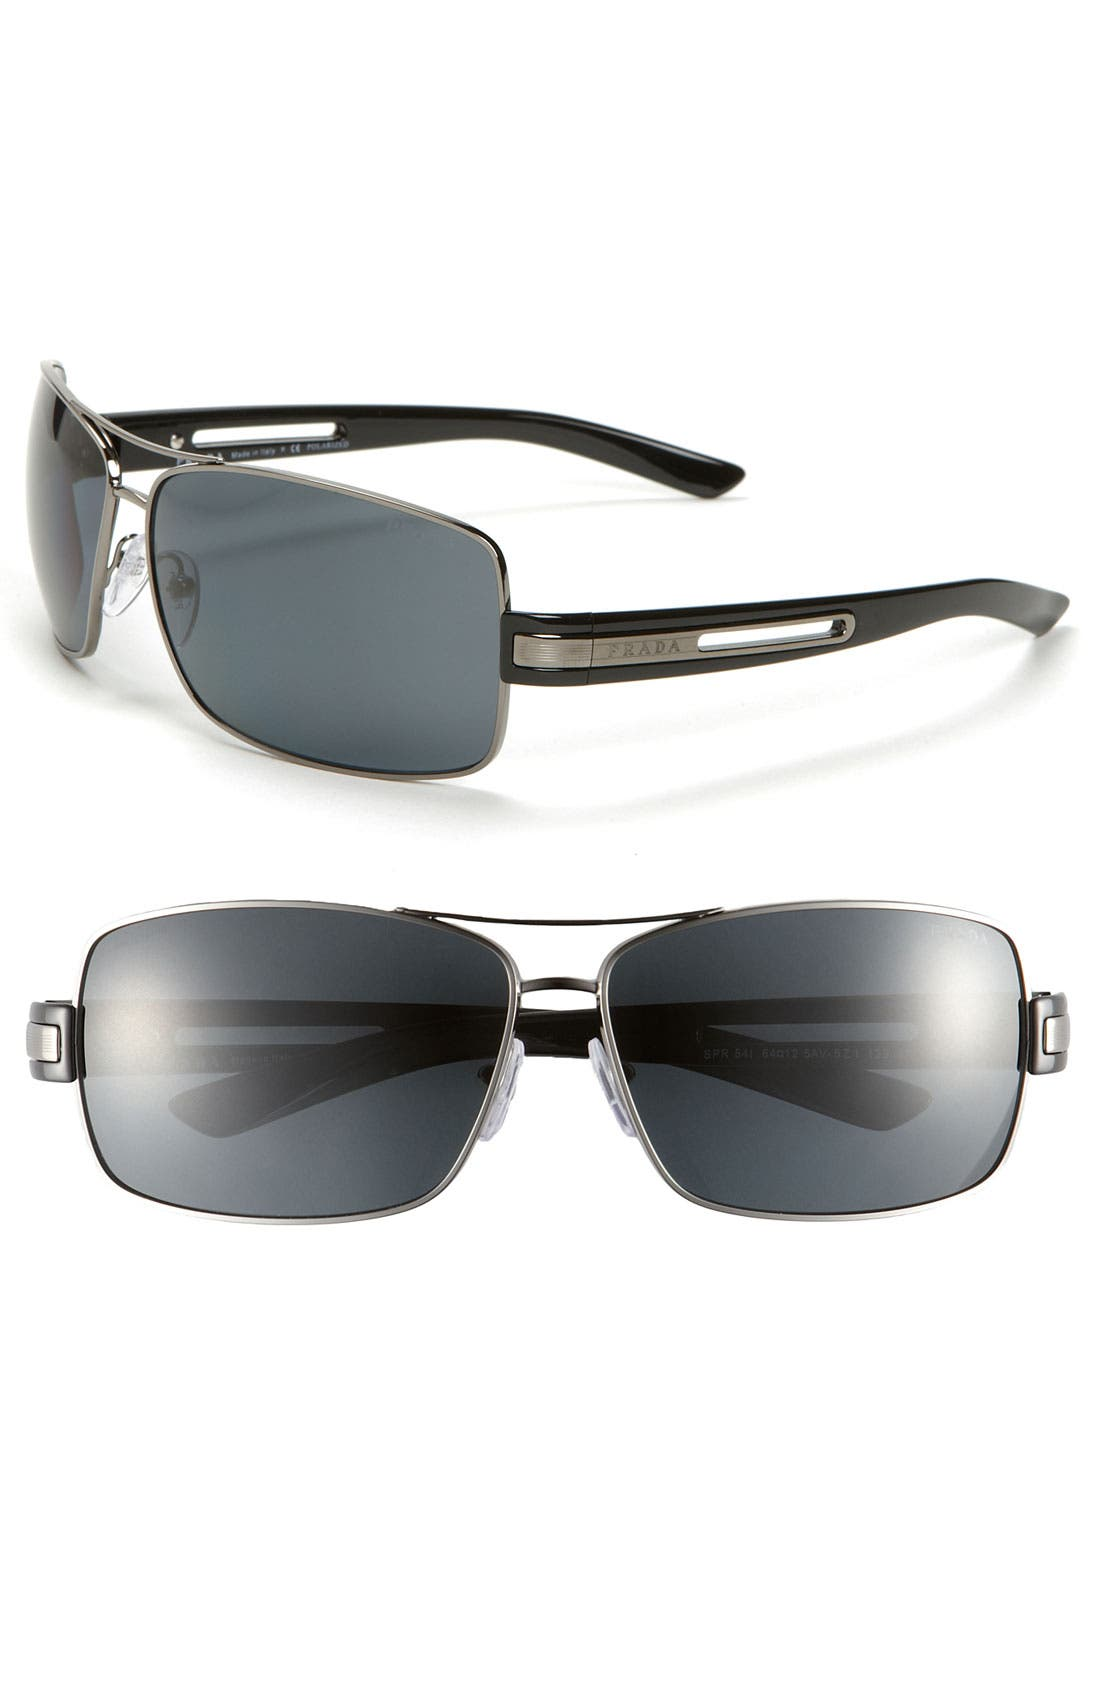 Alternate Image 1 Selected - Prada Polarized Aviator Sunglasses